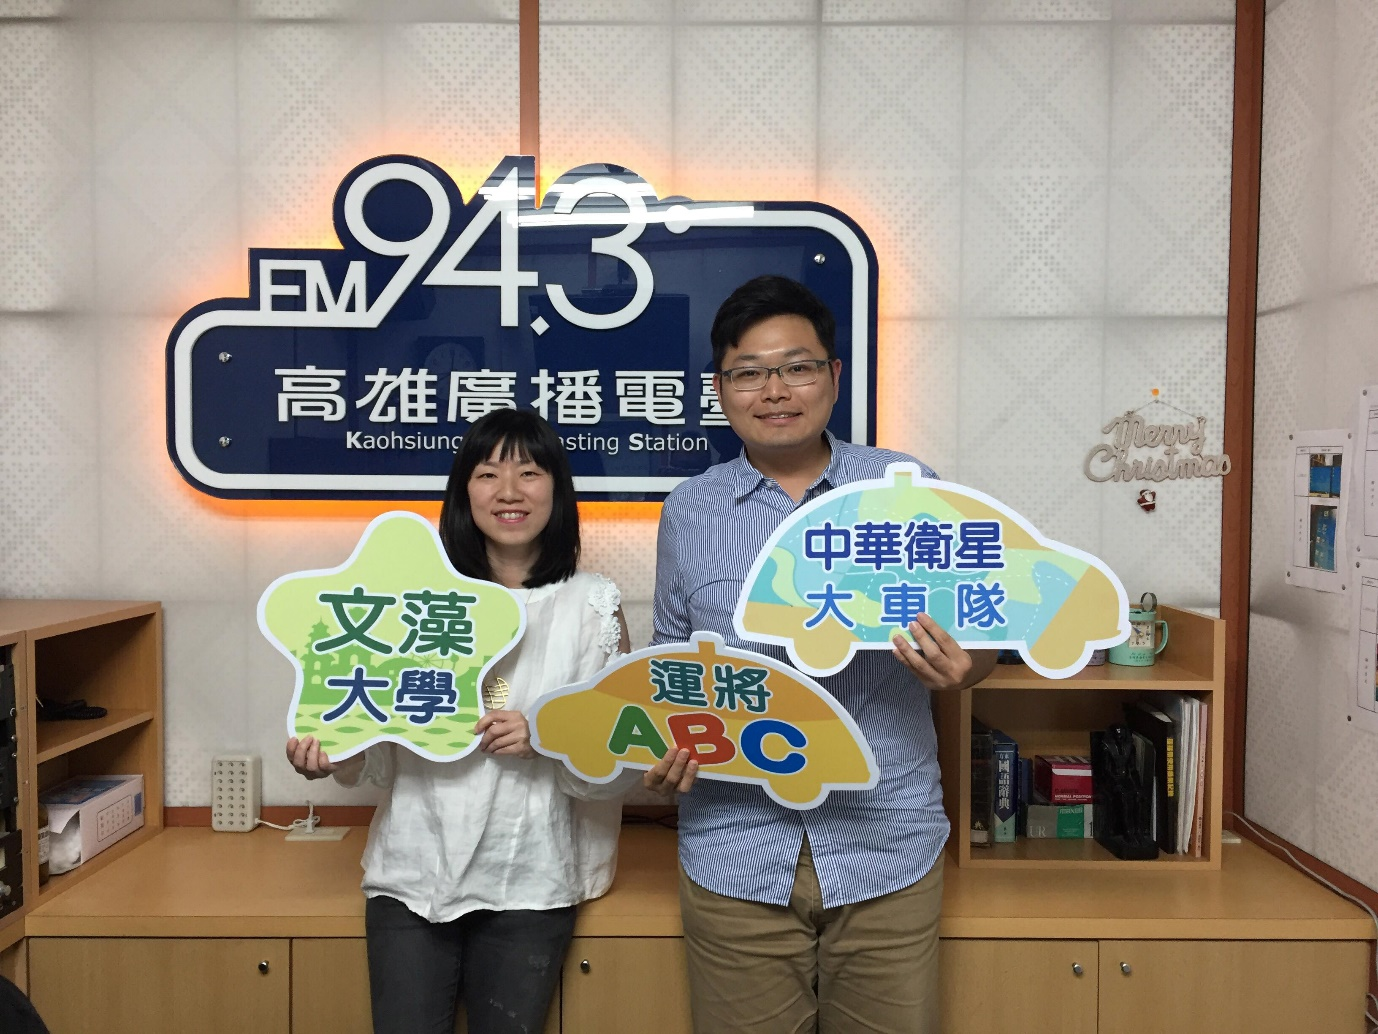 English Department Collaborates with Kaohsiung Broadcasting Station